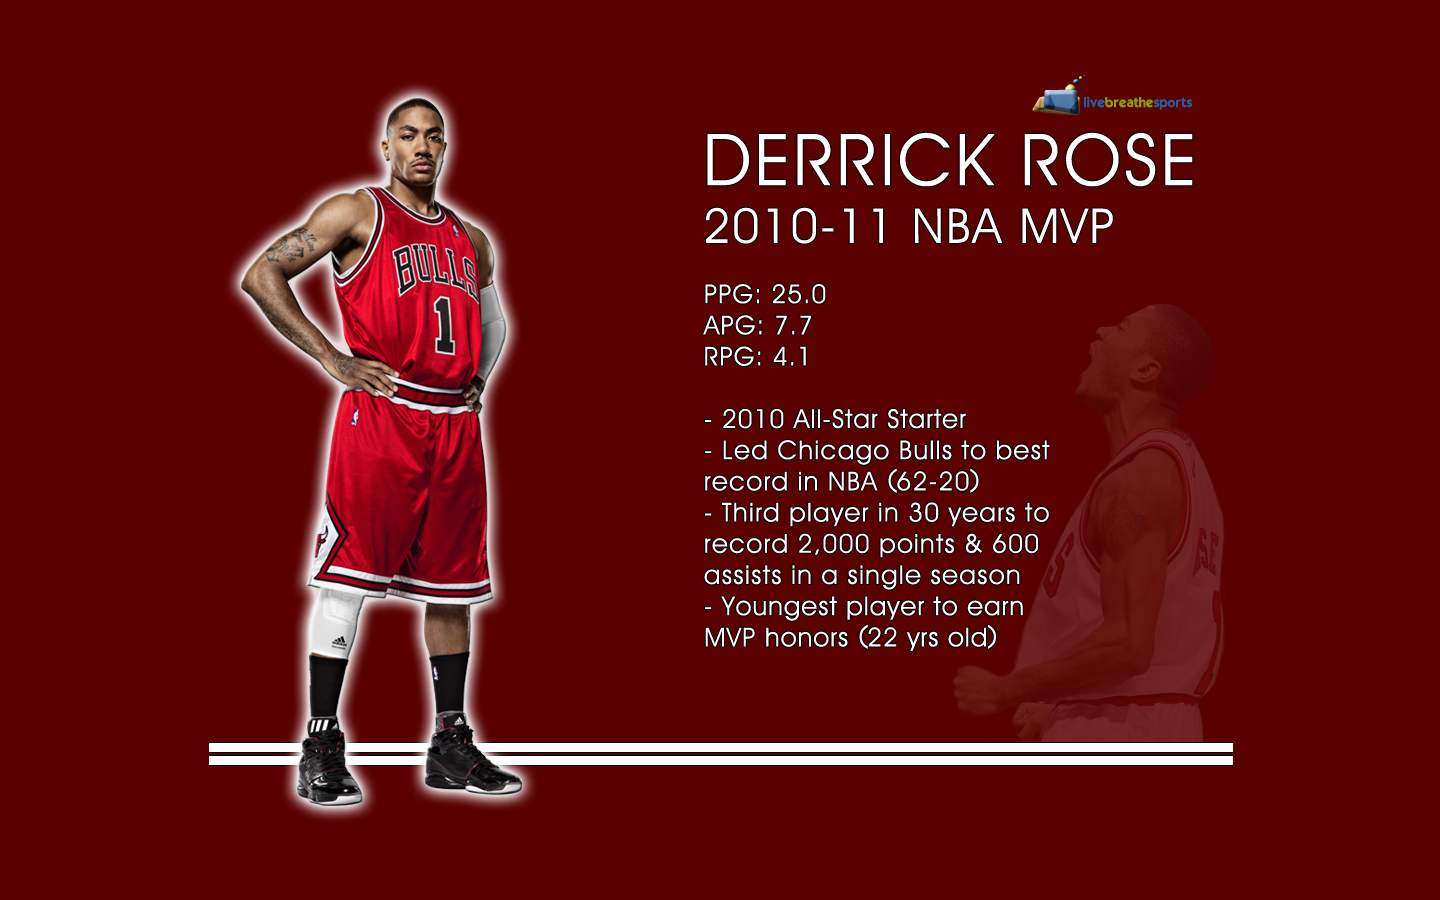 Derrick Rose MVP Wallpaper 1440 x 900jpg 1440x900